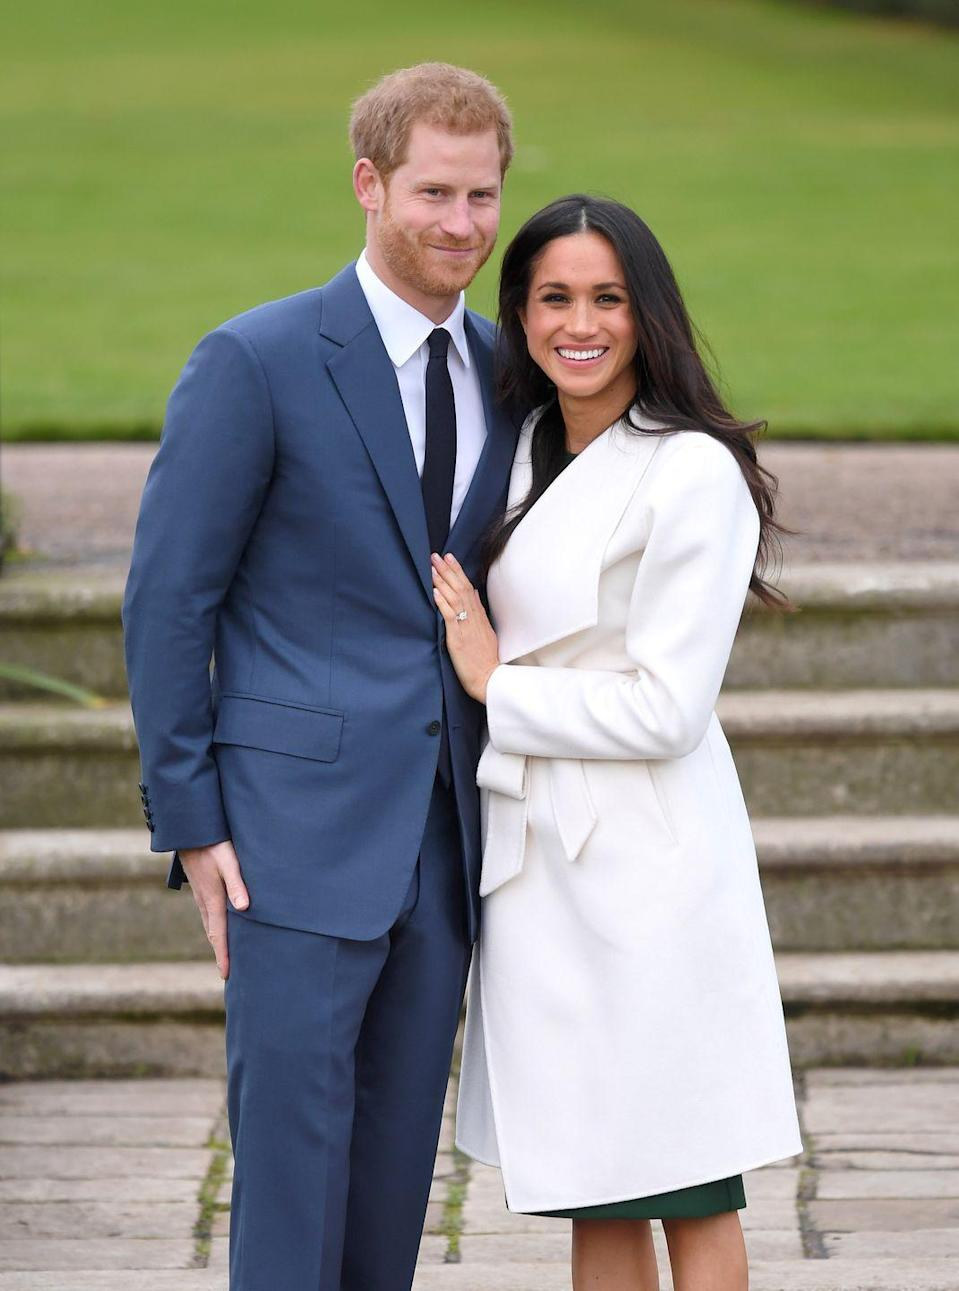 """<p>In November 2017, Prince Harry announced his engagement to American actress Meghan Markle. The happy couple <a href=""""https://www.townandcountrymag.com/society/tradition/a12198435/prince-harry-meghan-markle-engaged/"""" rel=""""nofollow noopener"""" target=""""_blank"""" data-ylk=""""slk:posed for photos at Kensington Palace"""" class=""""link rapid-noclick-resp"""">posed for photos at Kensington Palace </a>when the news was announced. Harry and Meghan quickly started planning their <a href=""""https://www.townandcountrymag.com/society/tradition/g14522381/prince-harry-meghan-markle-royal-wedding-2018-photos/"""" rel=""""nofollow noopener"""" target=""""_blank"""" data-ylk=""""slk:May 2018 royal wedding"""" class=""""link rapid-noclick-resp"""">May 2018 royal wedding</a>, which was held at St. George's Chapel at Windsor Castle.</p>"""